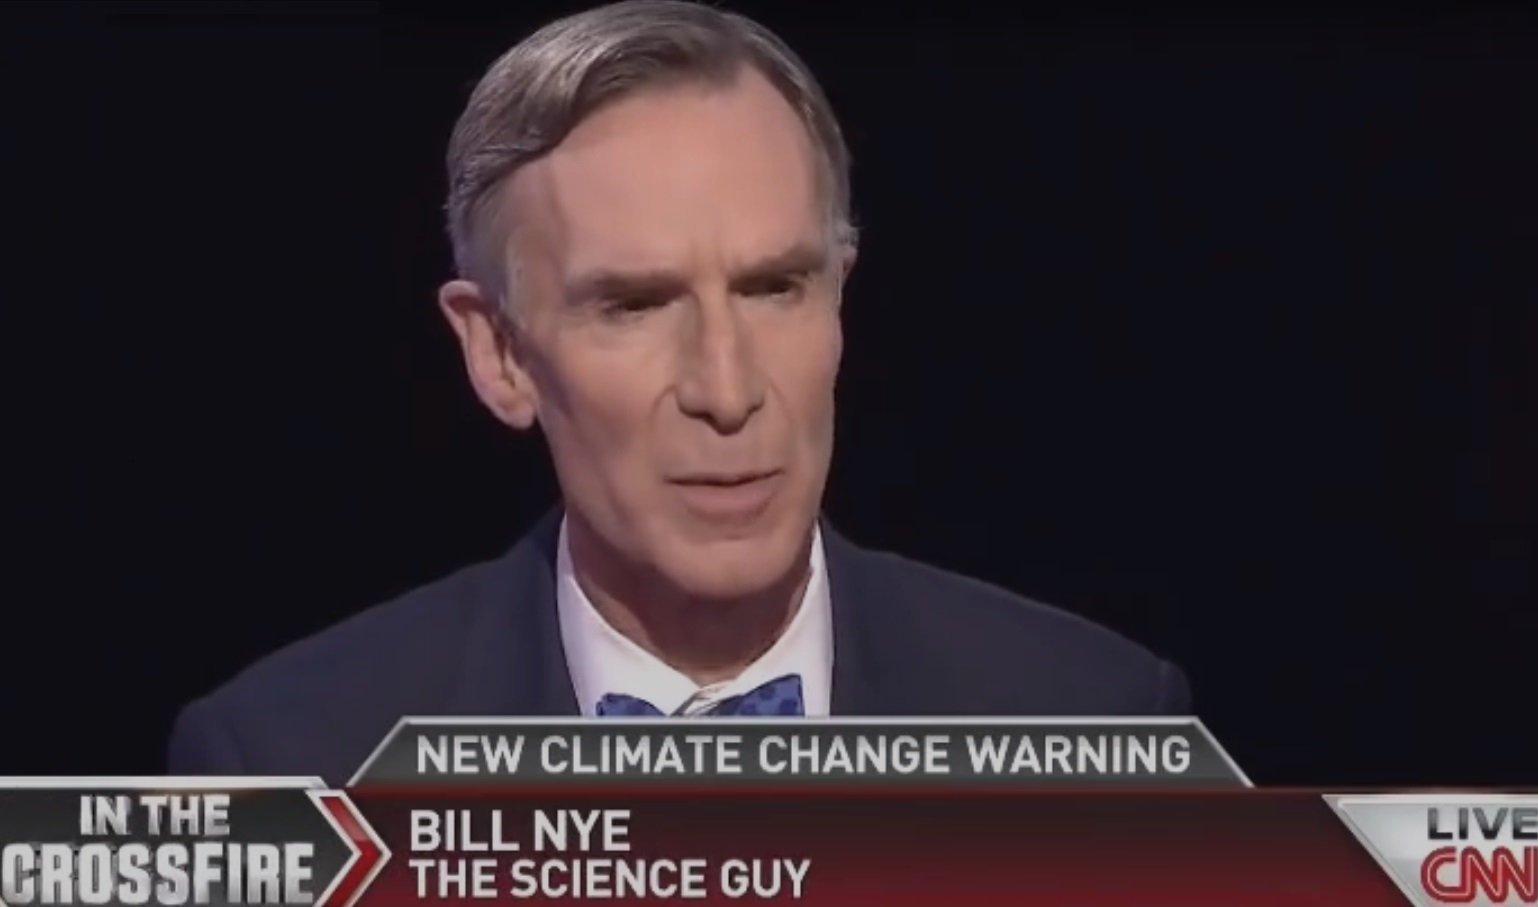 How Can Bill Nye Understand Anything About Science When He